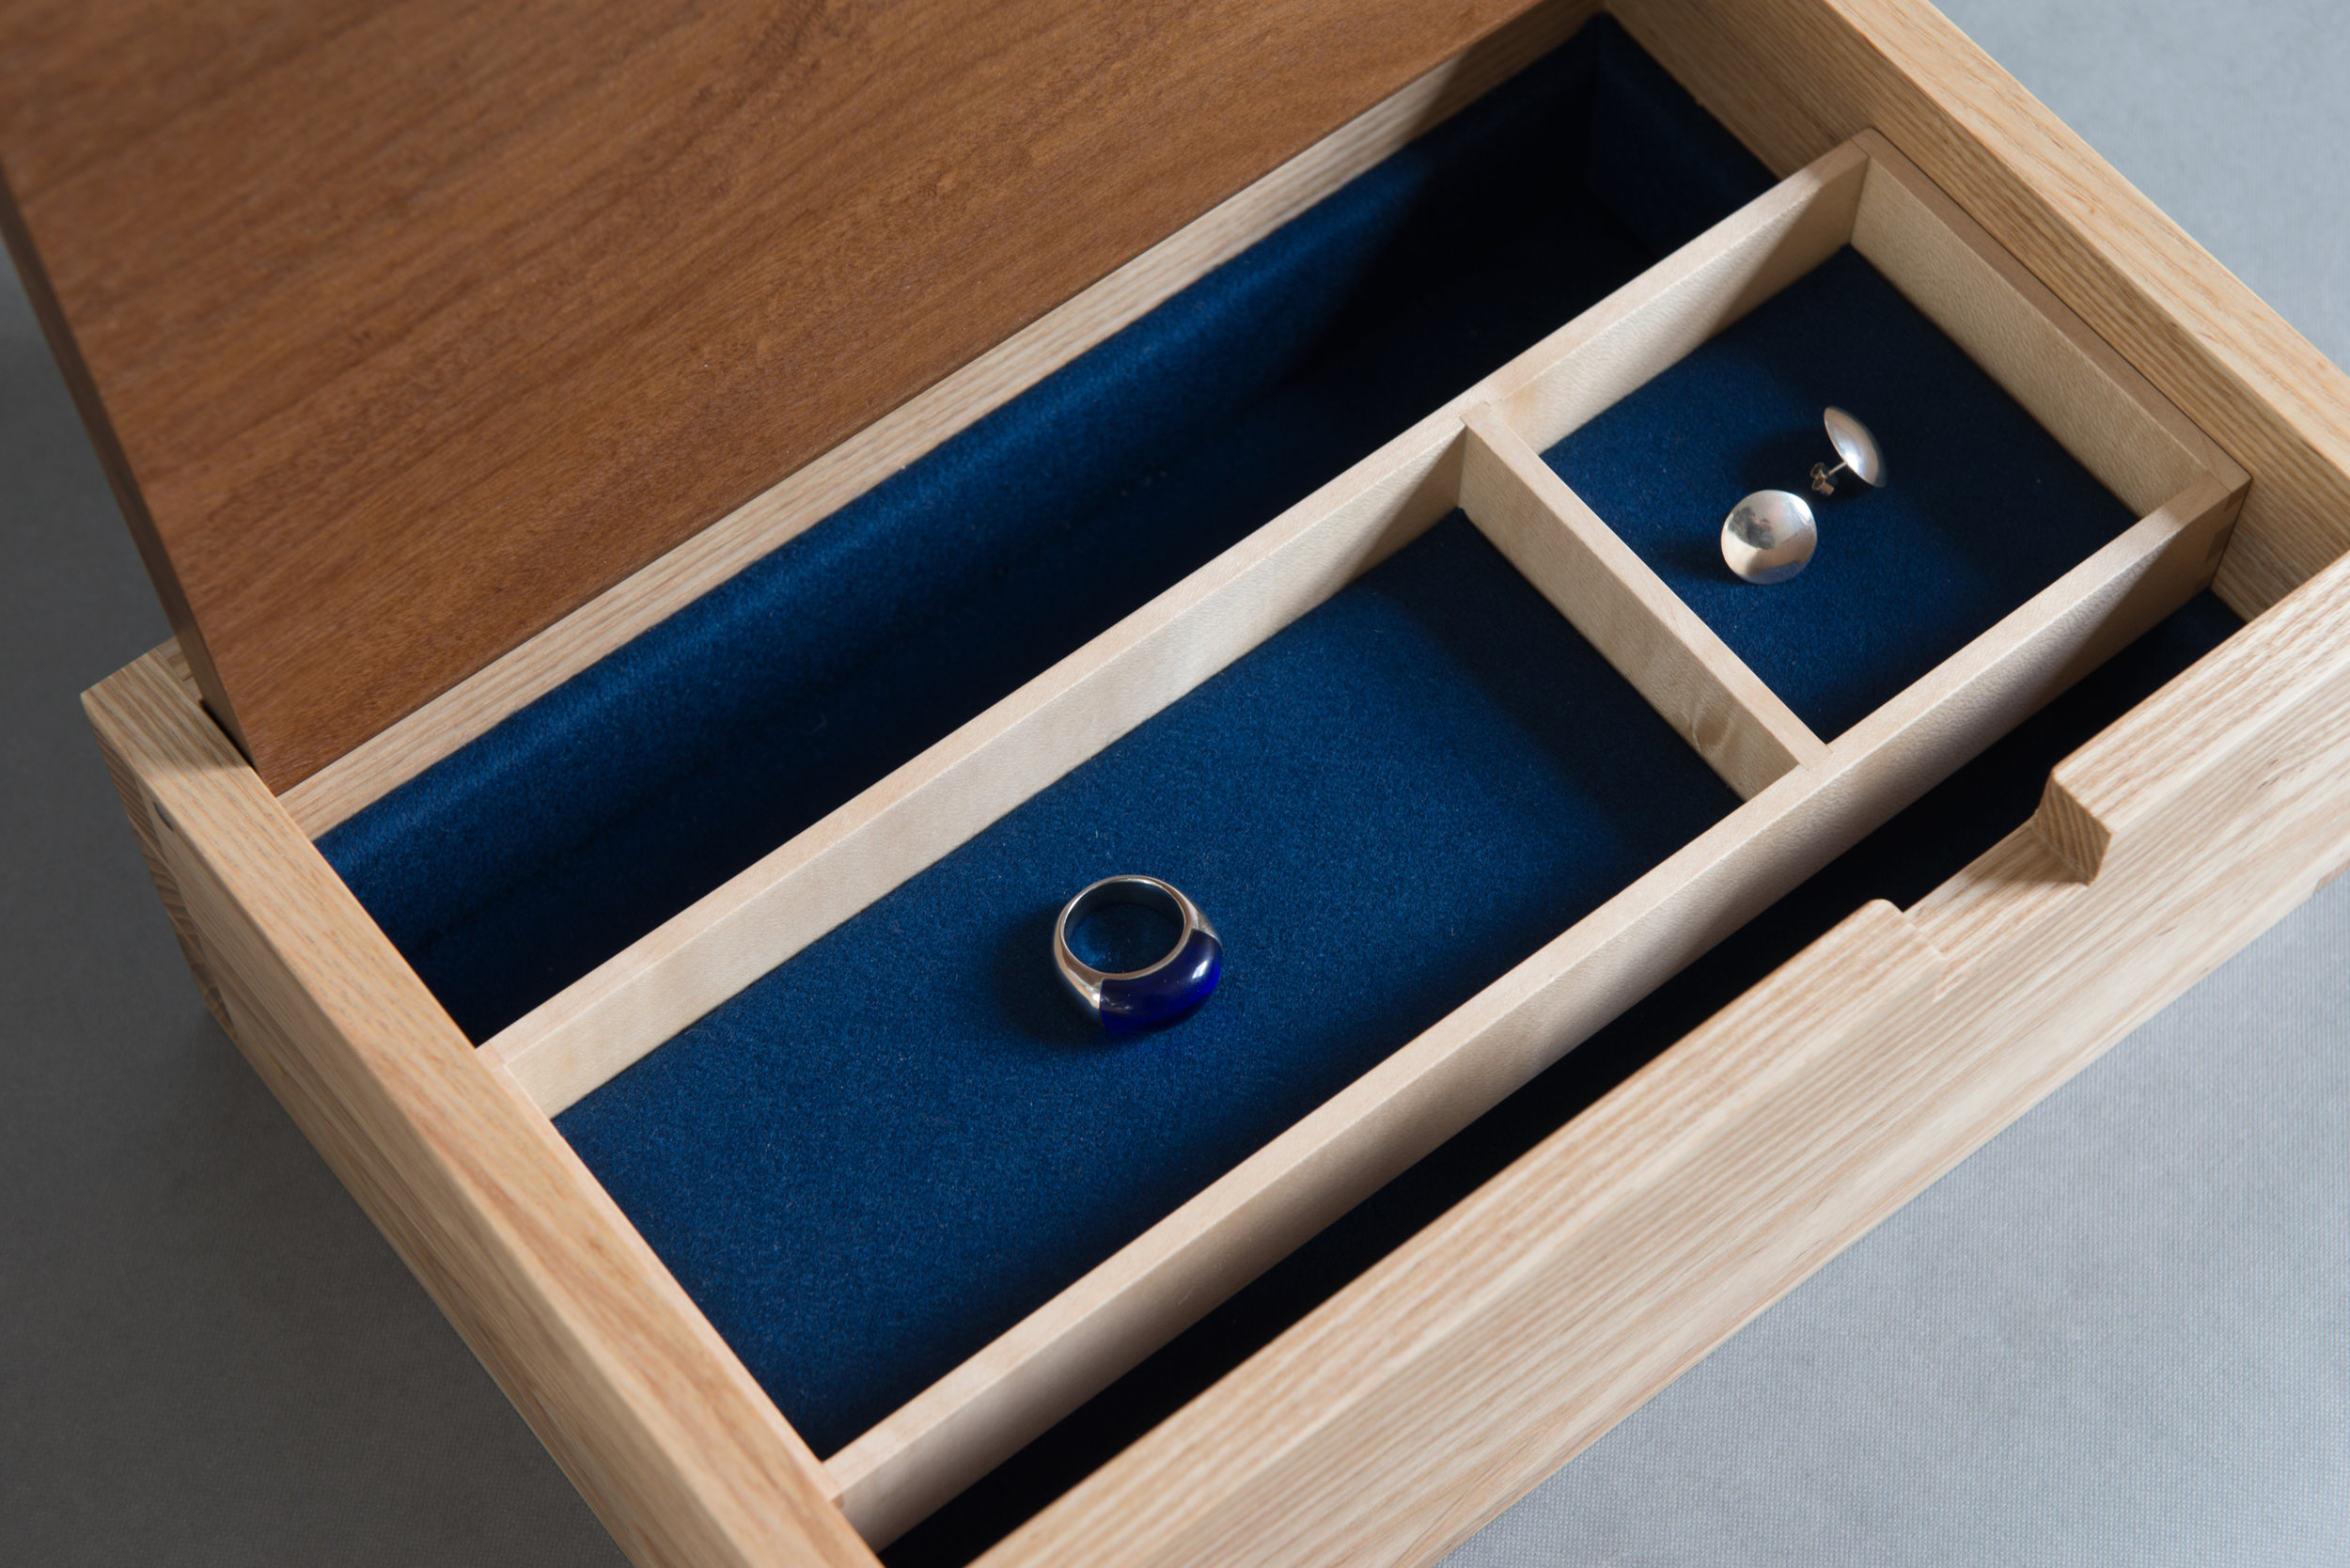 jewellery box insert baize